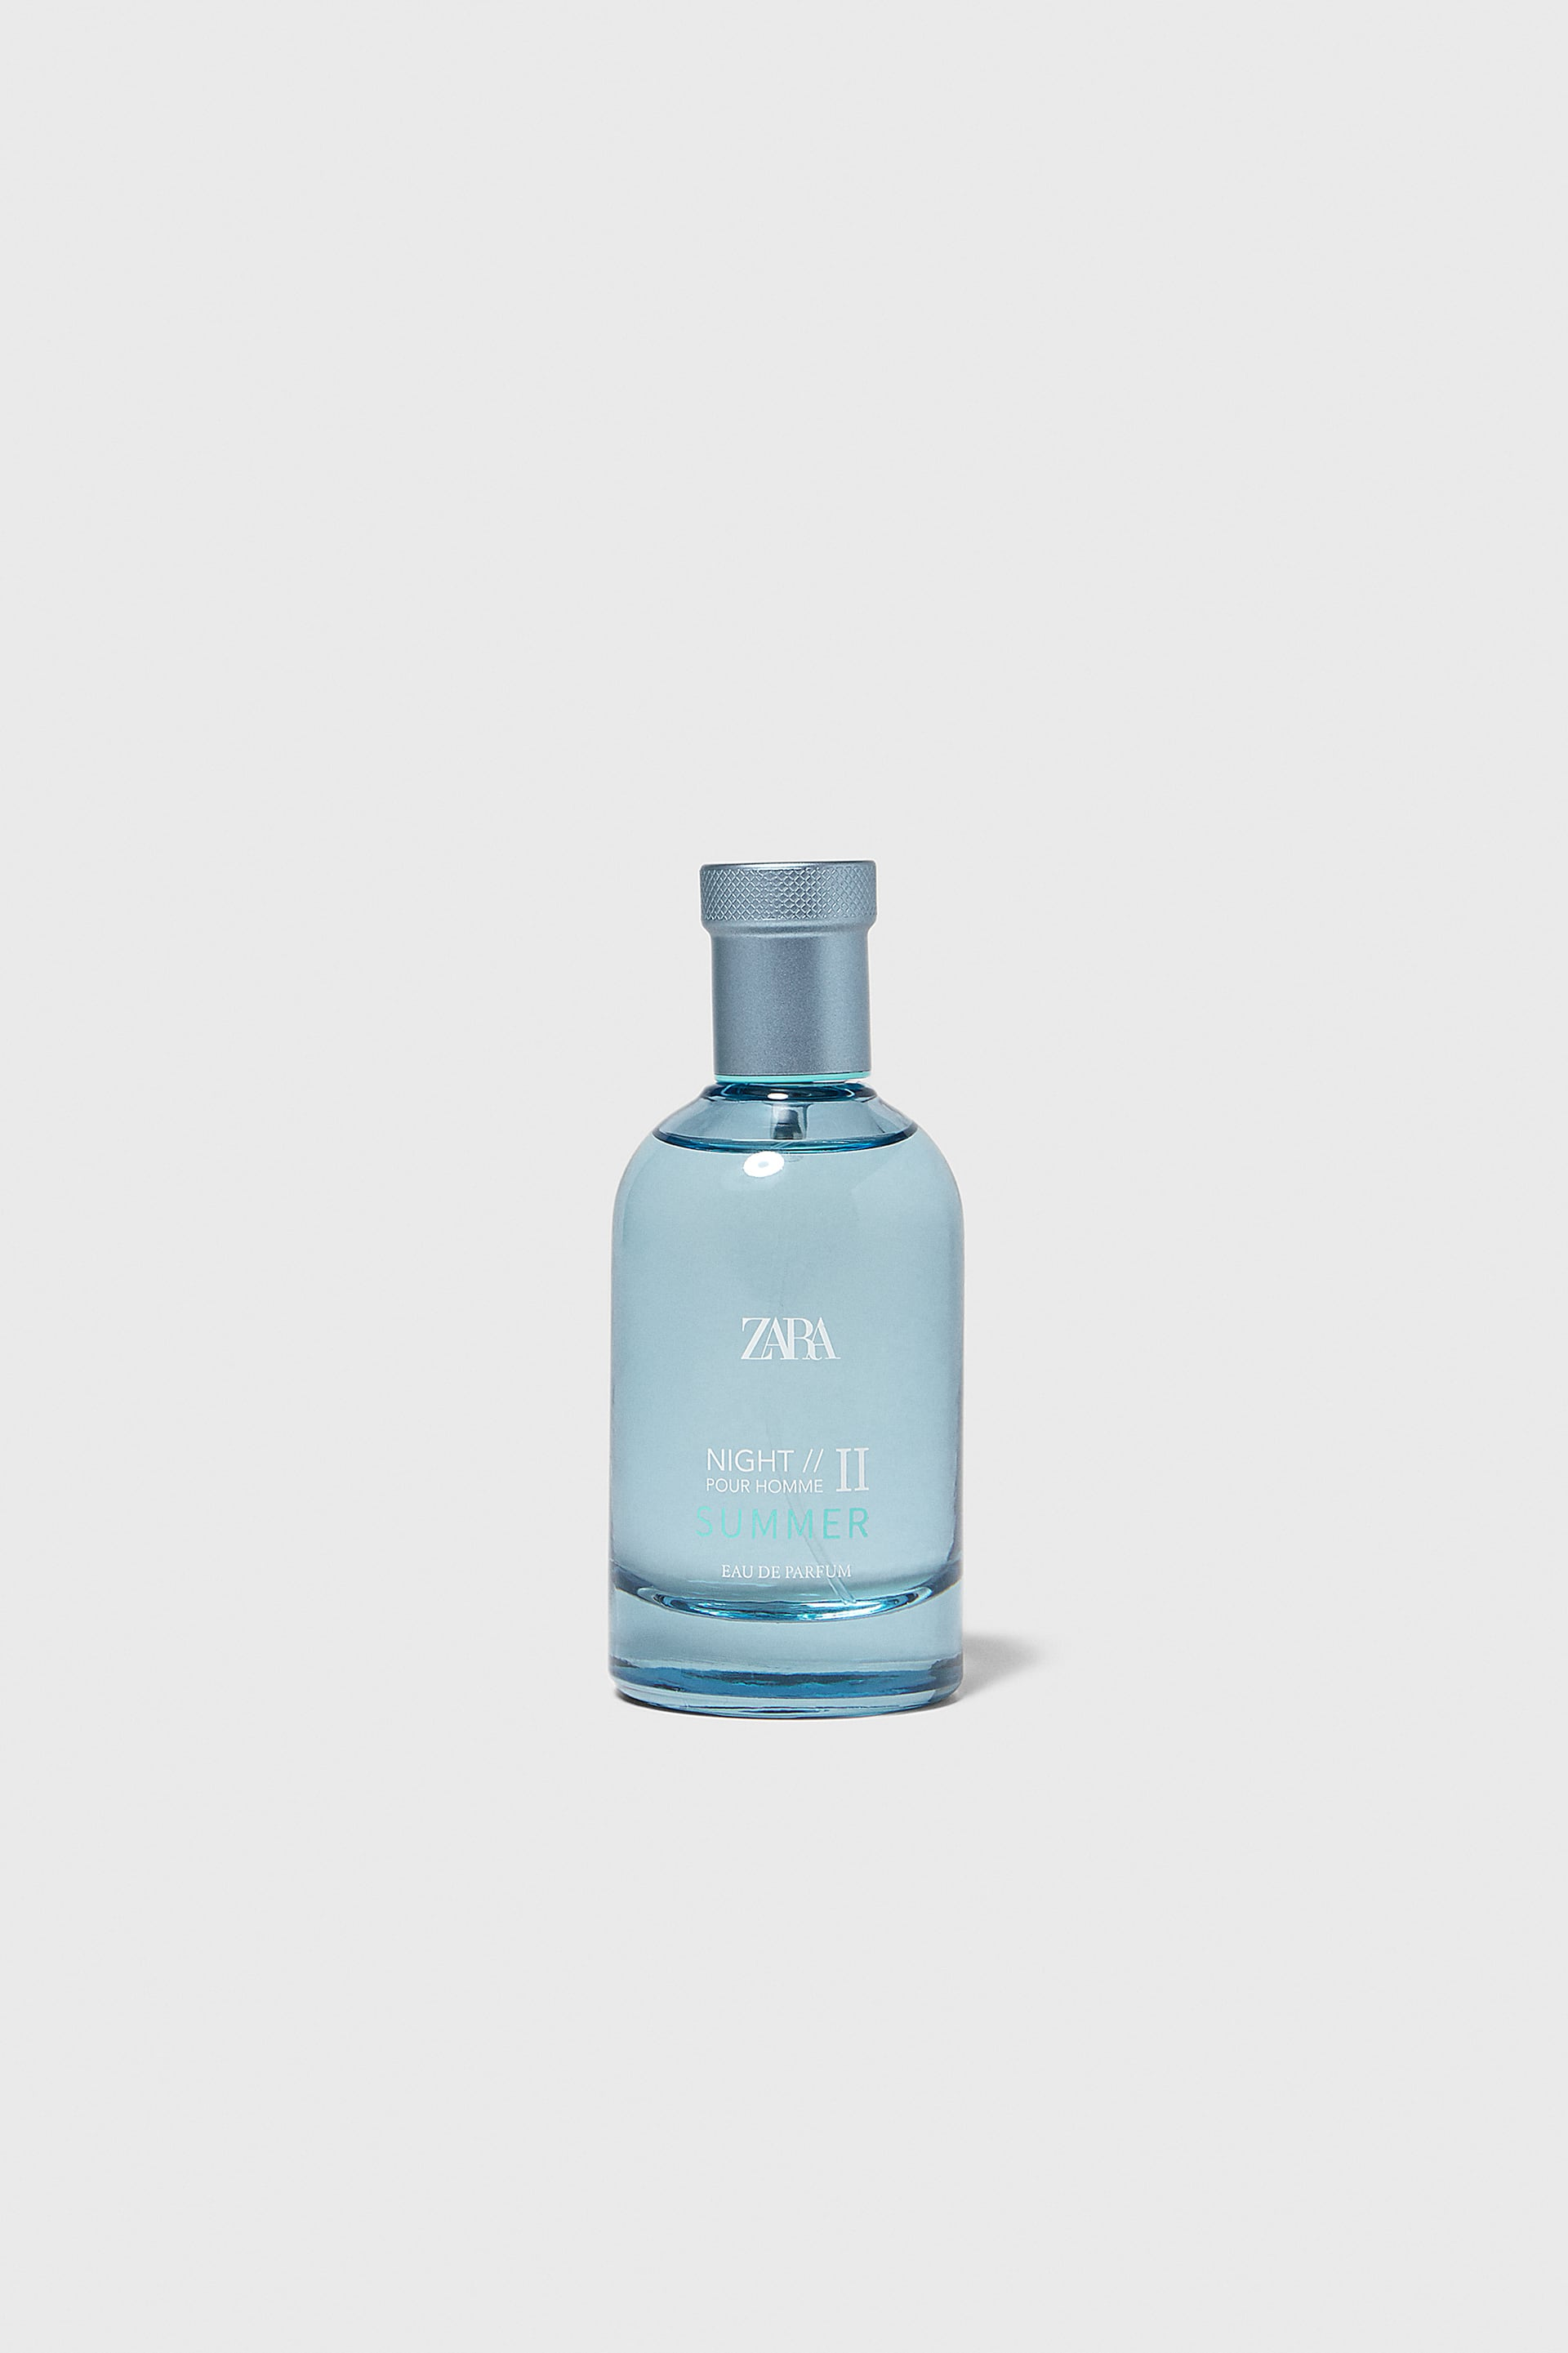 d8f87ab2 Image 1 of NIGHT POUR HOMME // II SUMMER 100 ML from Zara